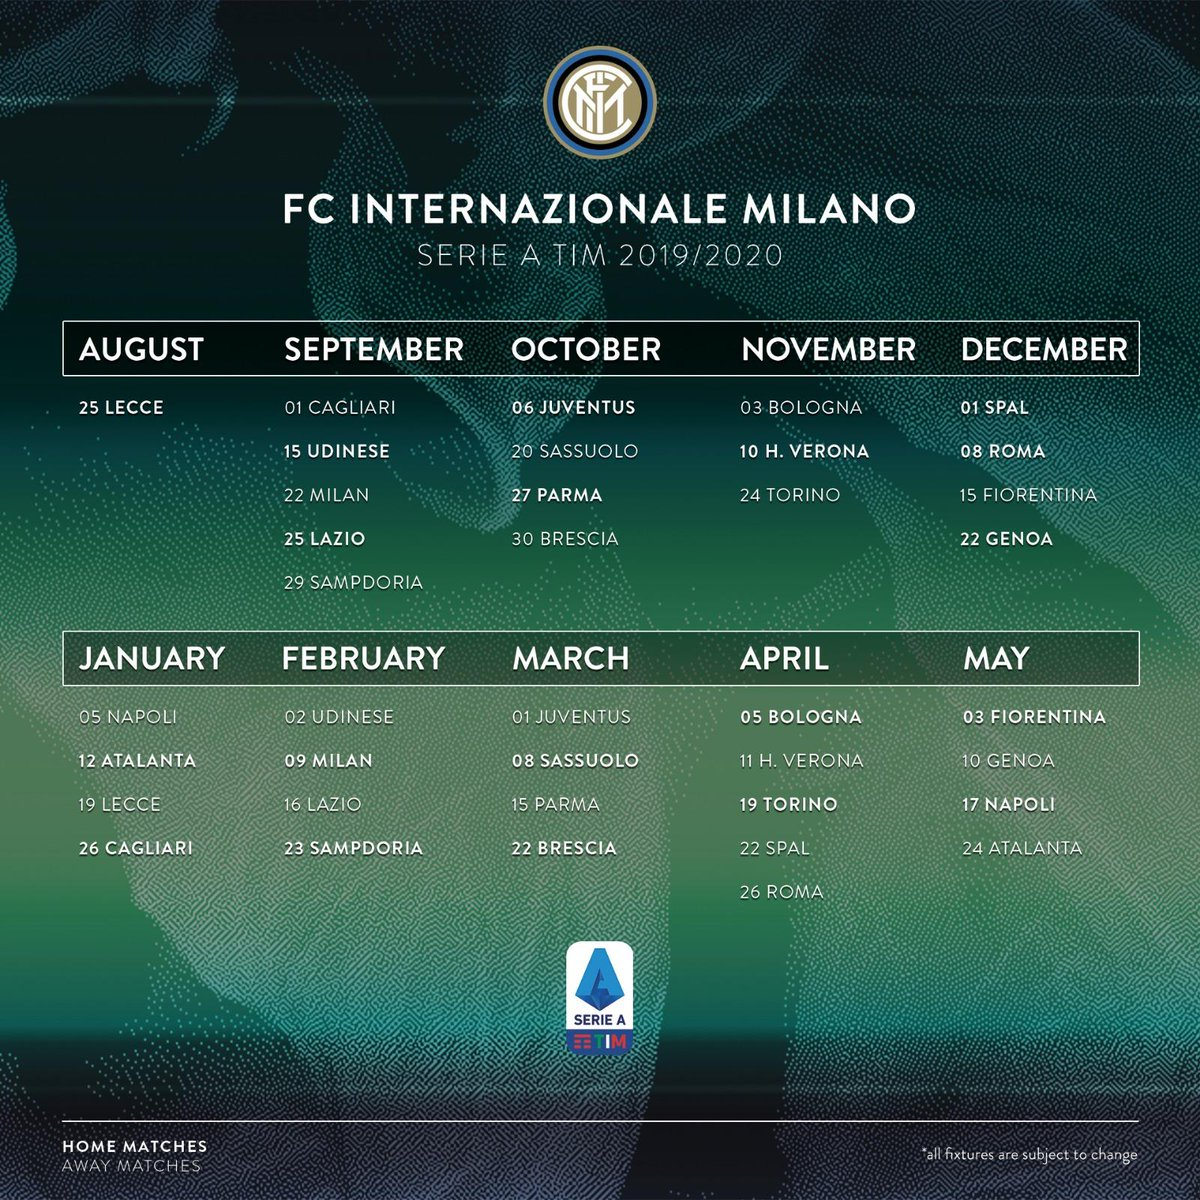 Calendario Roma Serie A 2020.Serie A Tim 2019 2020 Il Calendario Dell Inter Clubcampani